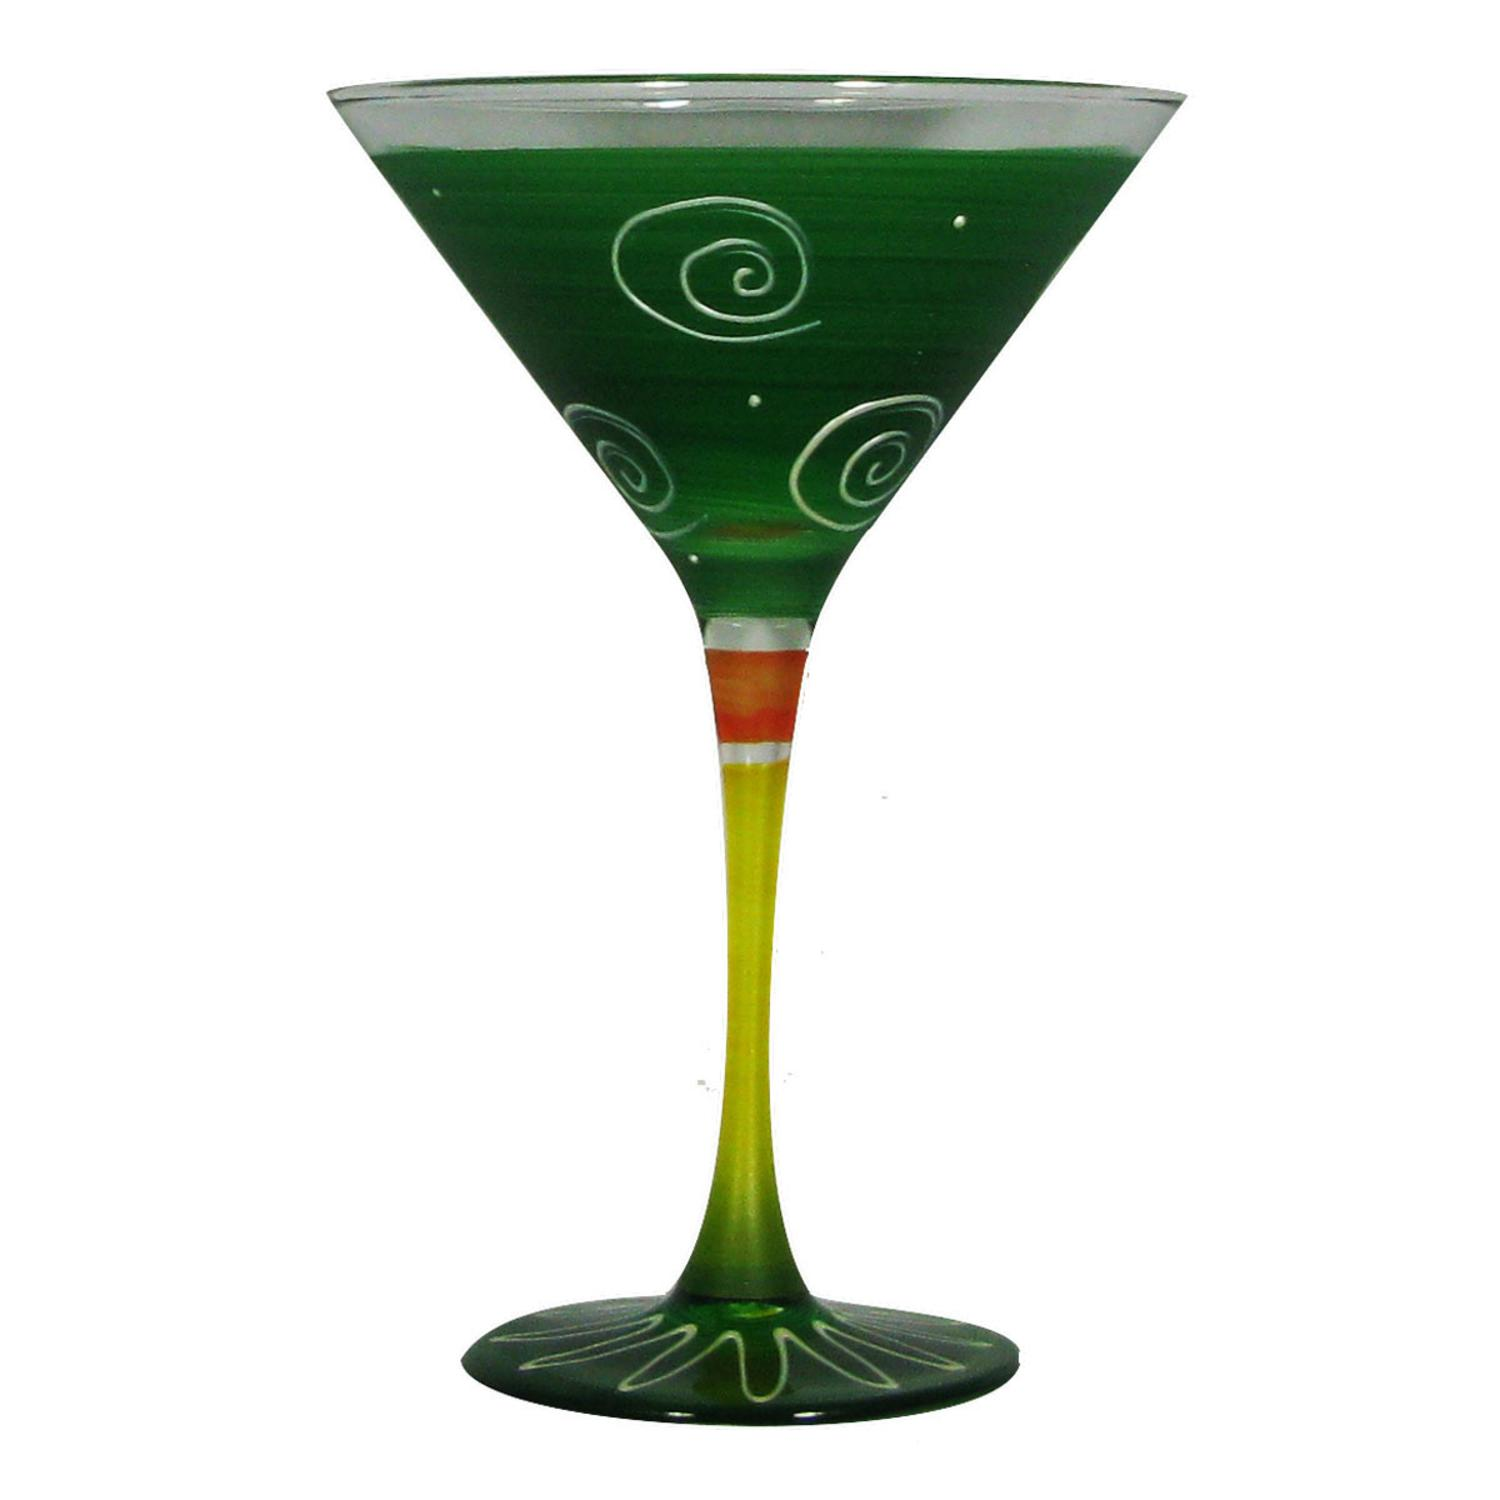 Set of 2 Dark Green & White Hand Painted Martini Drinking Glasses - 7.5 Ounces